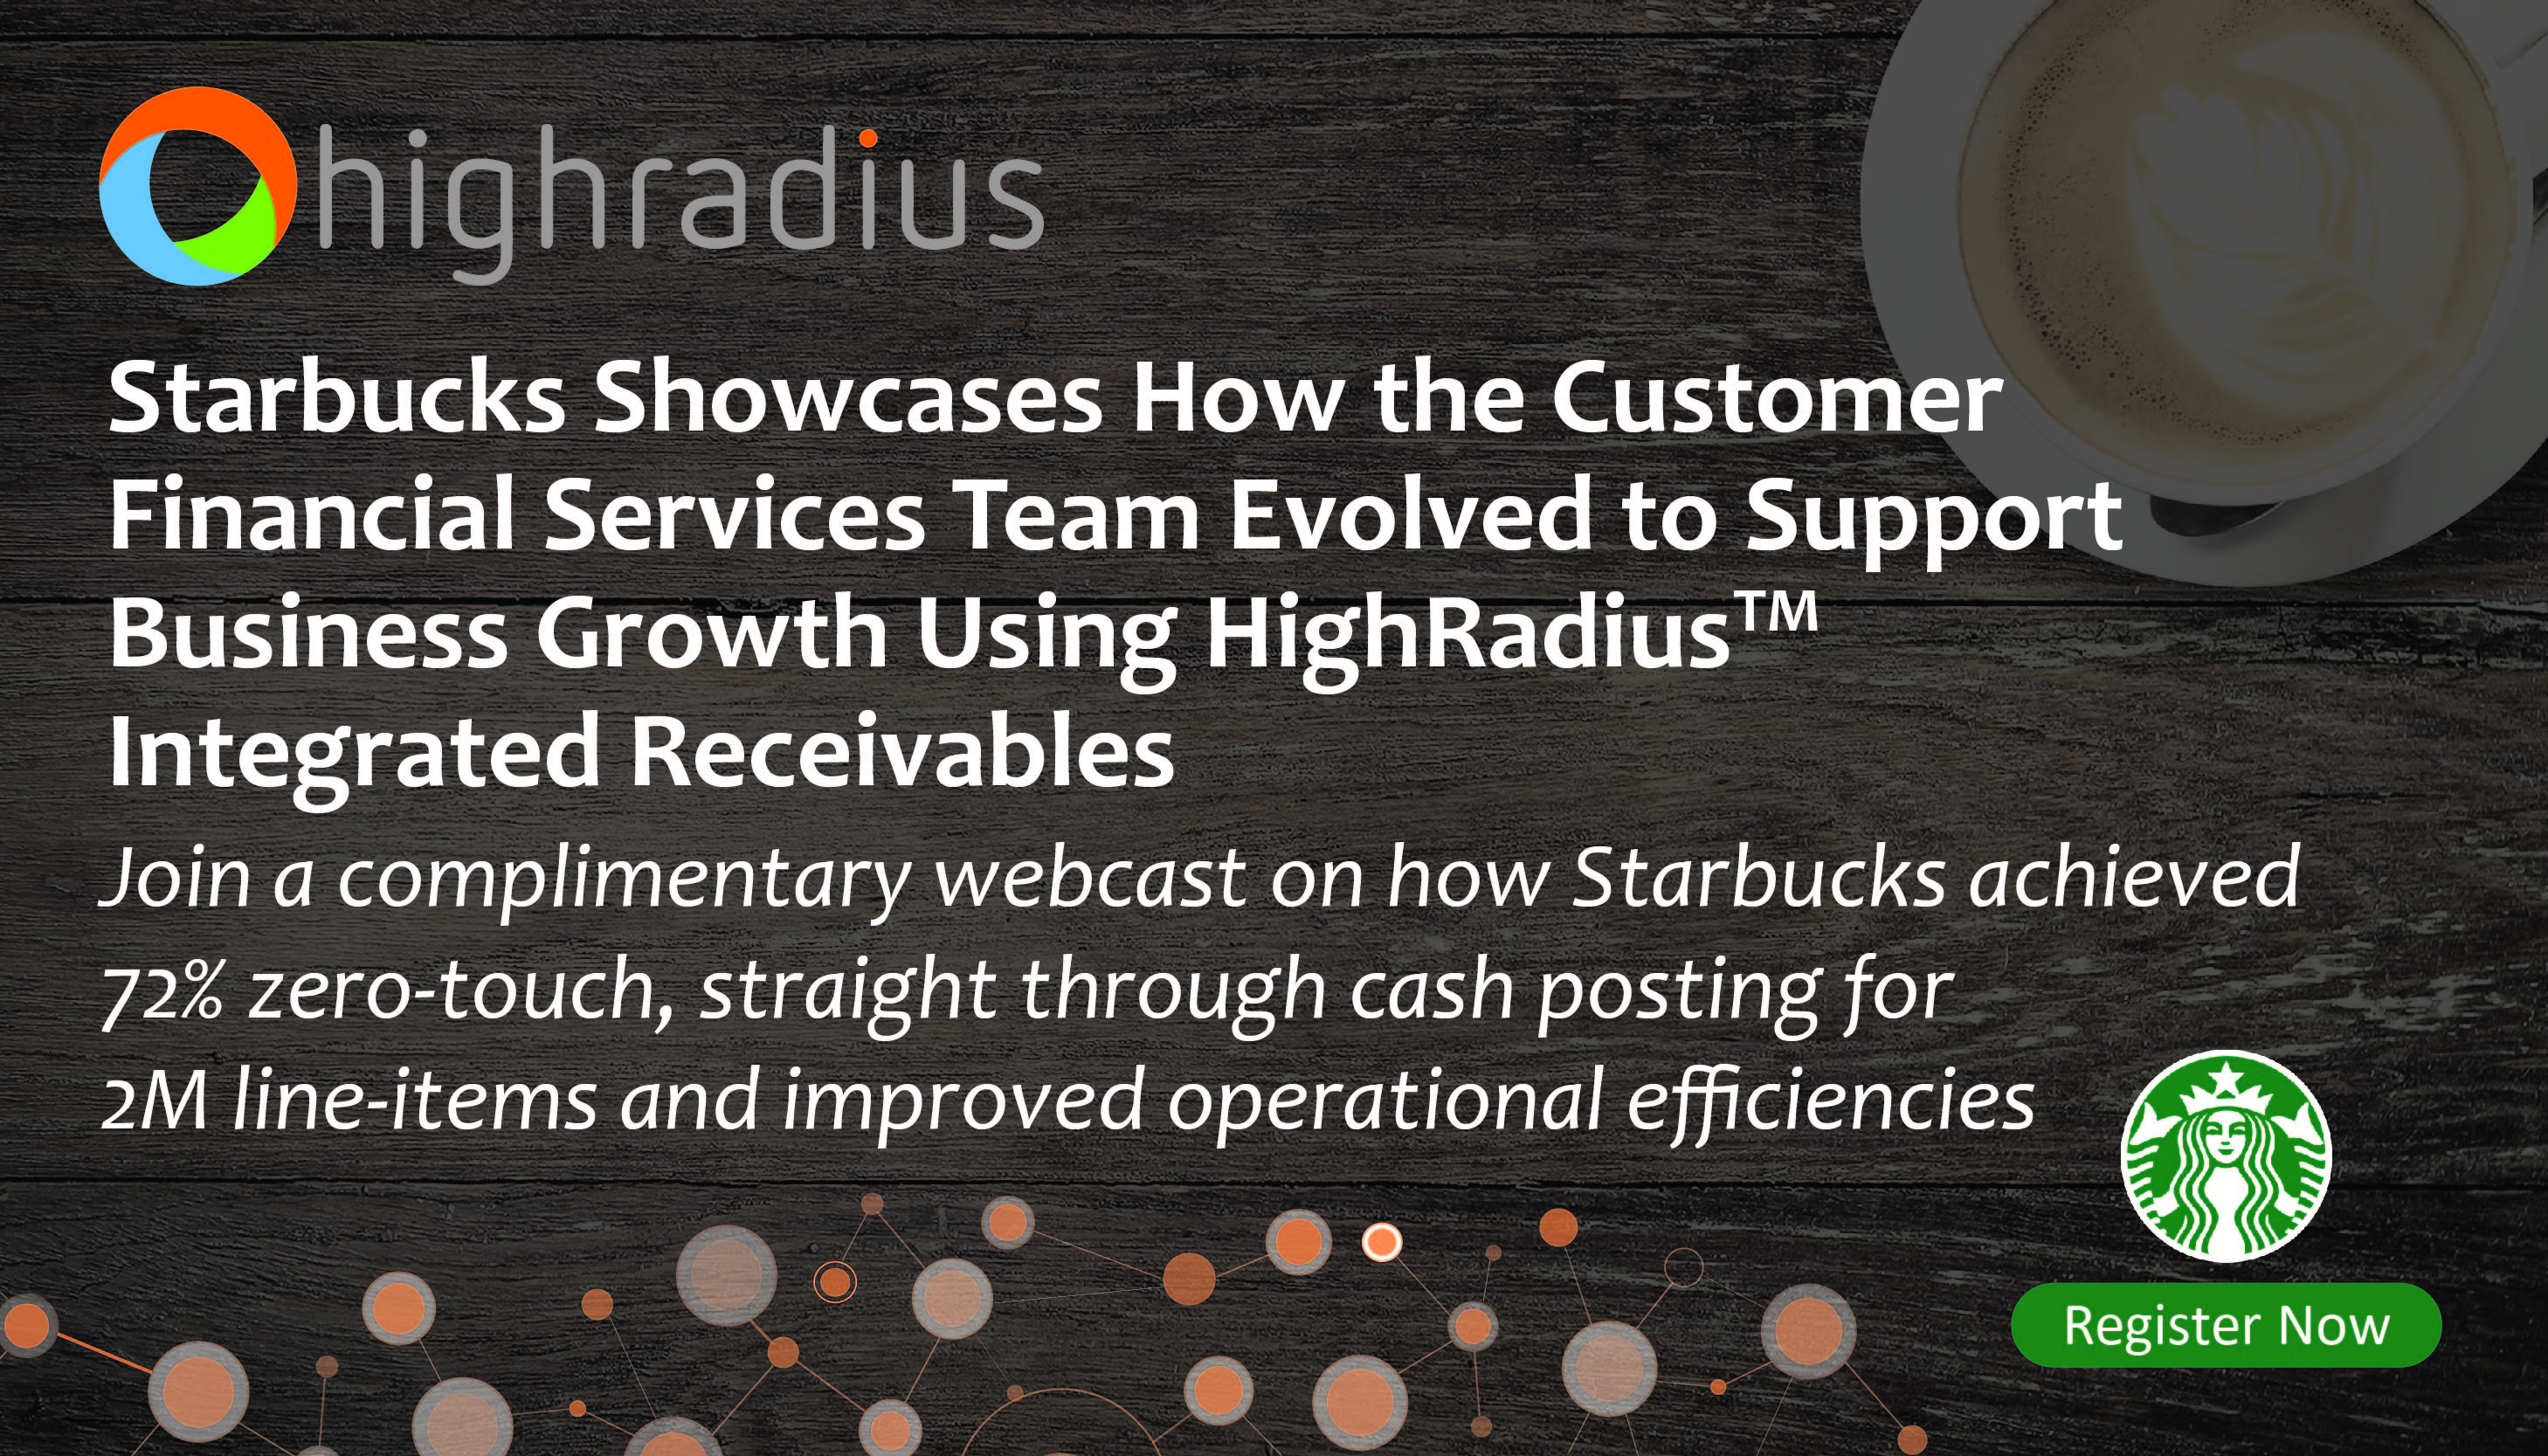 Starbucks Showcases How the Customer Financial Services Team Evolved to  Support Business Growth Using HighRadiusTM Integrated Receivables